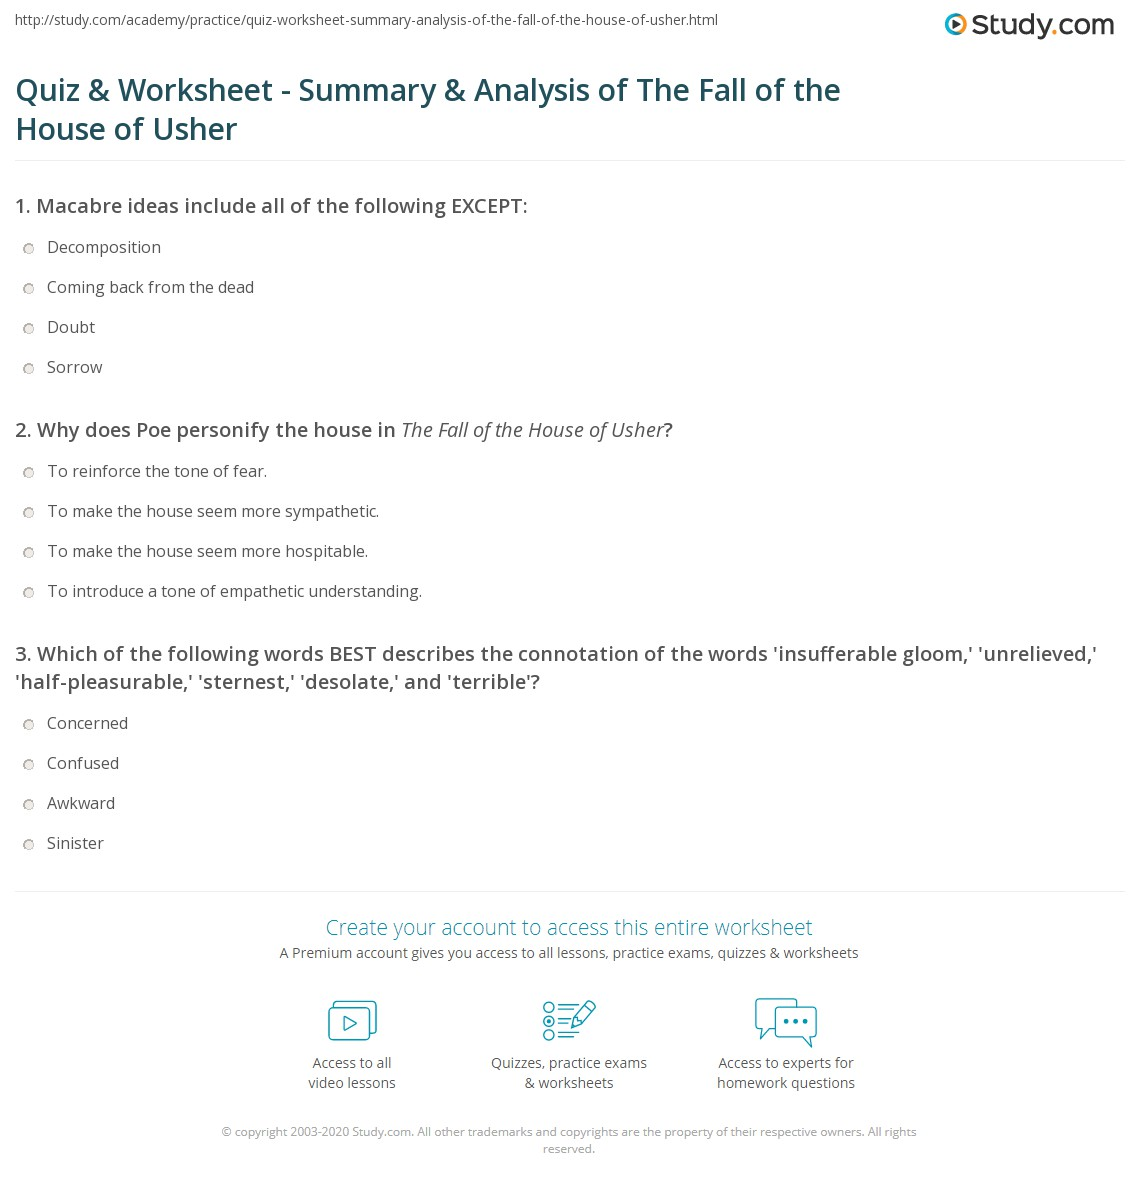 quiz worksheet summary analysis of the fall of the house of  print poe s the fall of the house of usher summary and analysis worksheet